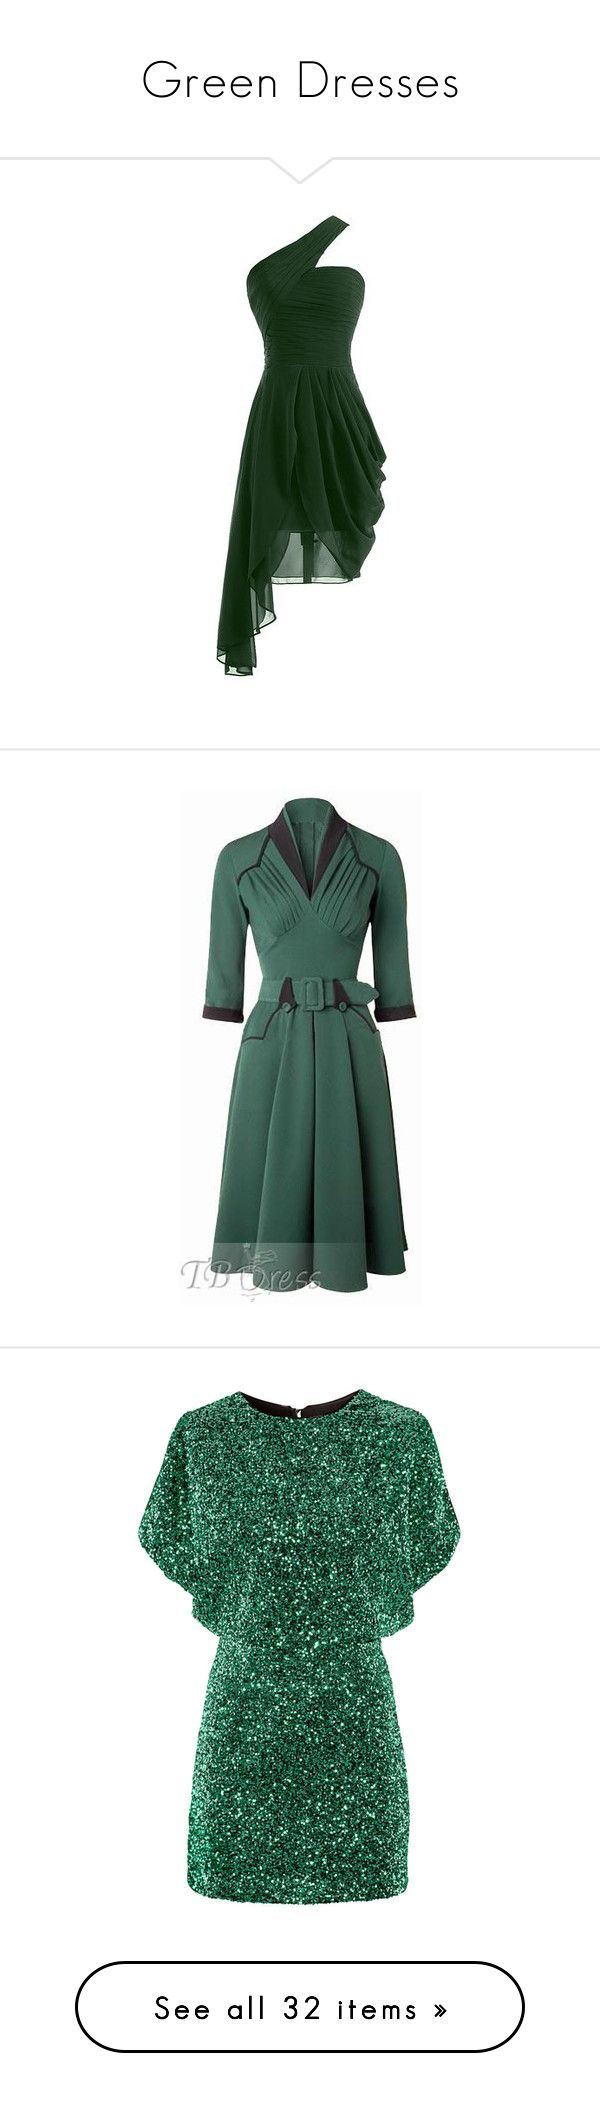 """""""Green Dresses"""" by eternalfeatherfilm on Polyvore featuring dresses, chiffon dresses, evening cocktail dresses, green evening dresses, chiffon evening dresses, special occasion dresses, plus size rockabilly dresses, plus size dresses, rockabilly dresses and flounce dress"""